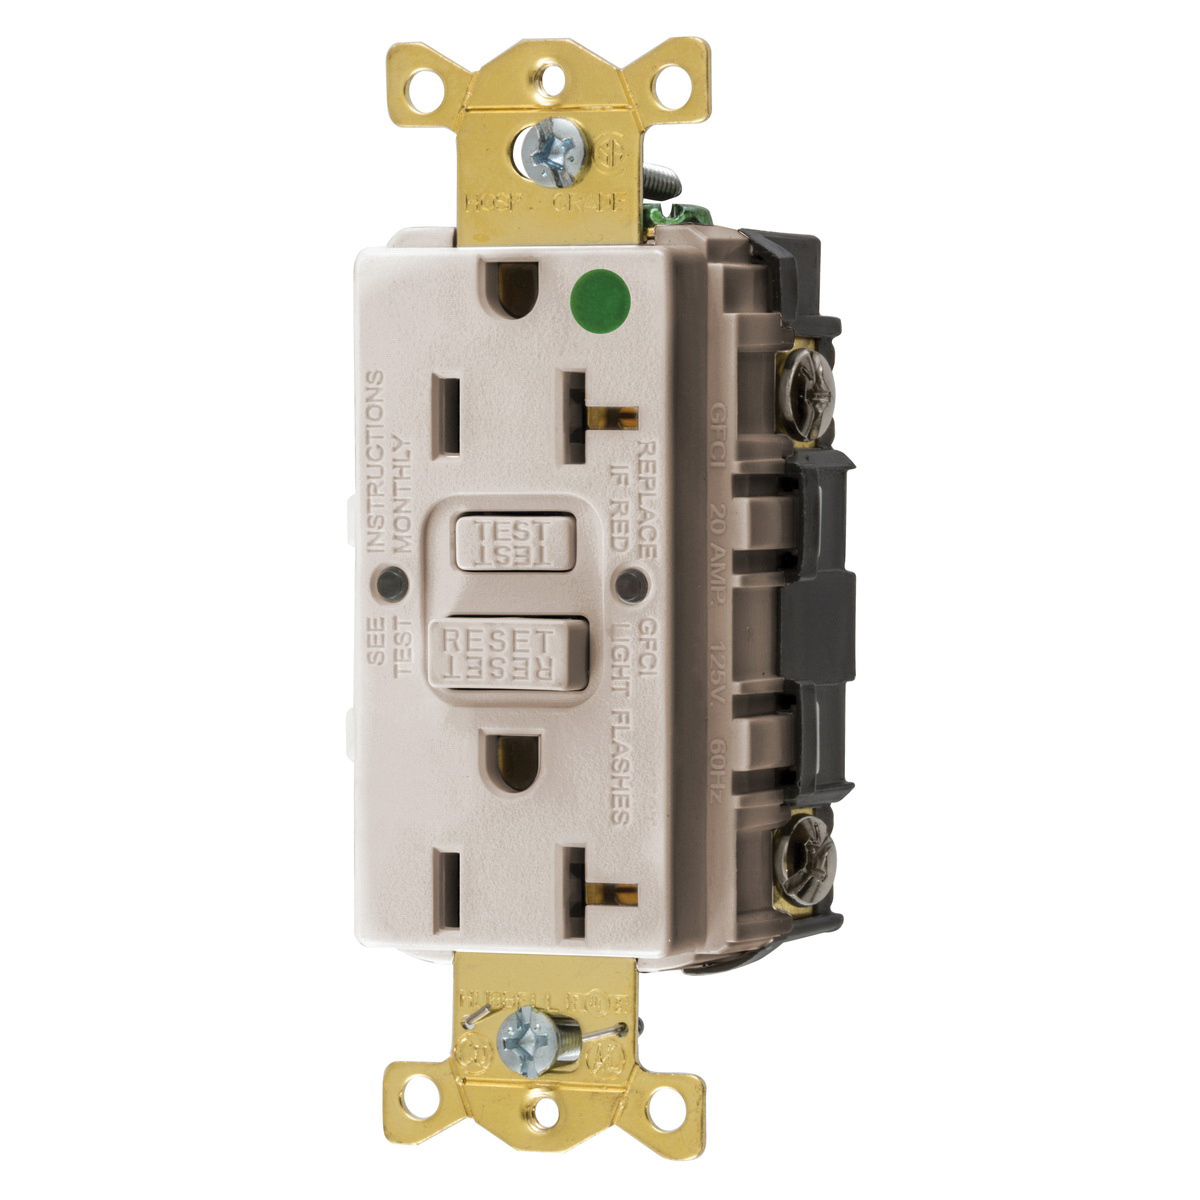 Hubbell-Wiring GFRST83LA Flush Face Straight Blade Self-Test GFCI  on receptacles wiring, electrical conduit, electrical wiring, power cord, conduit wiring, plumbing wiring, junction box, earthing system, 3 phase breaker panel wiring, circuit wiring, circuit breaker, afci wiring, electric motor, duplex wiring, electric power distribution, amp wiring, distribution board, knob-and-tube wiring, dimmer wiring, daisy chain wiring, alternating current, electricity wiring, 220 volt to 110 volt wiring, national electrical code, three-phase electric power, electrical engineering, diy wiring, timer wiring, wiring diagram, power cable, led wiring, ground and neutral, ground wiring, lutron wiring, hot tub wiring, low voltage wiring, extension cord,